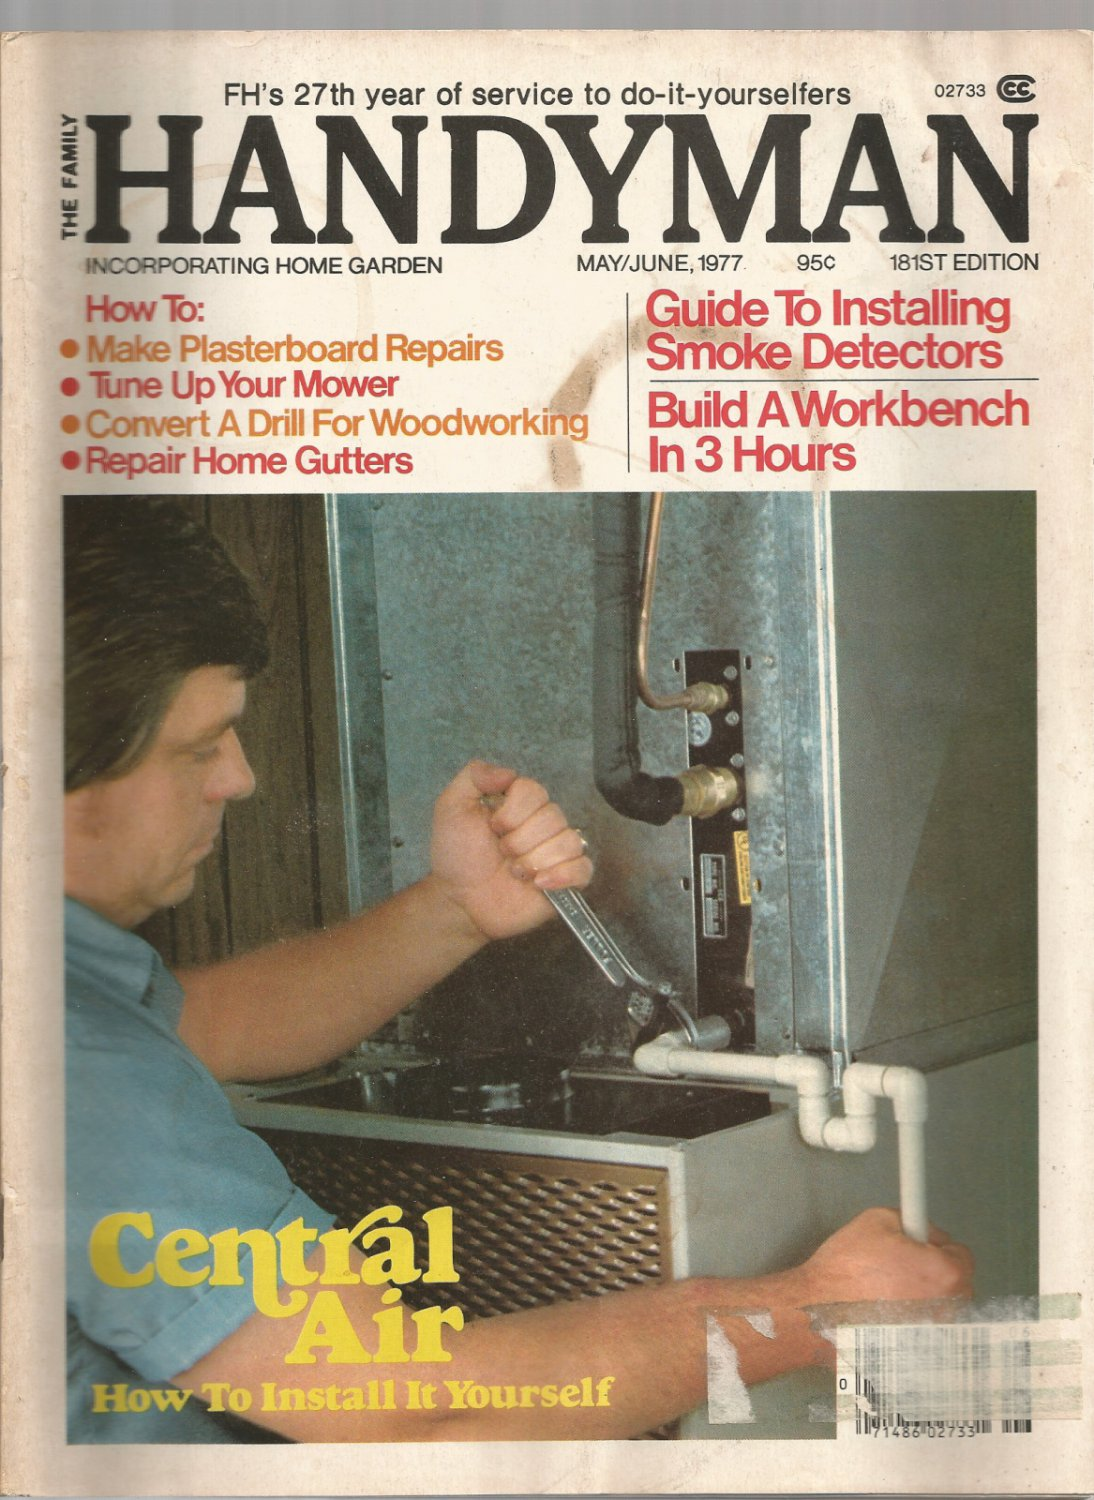 The Family Handyman-   May/ June 1977- how to tune up your mower